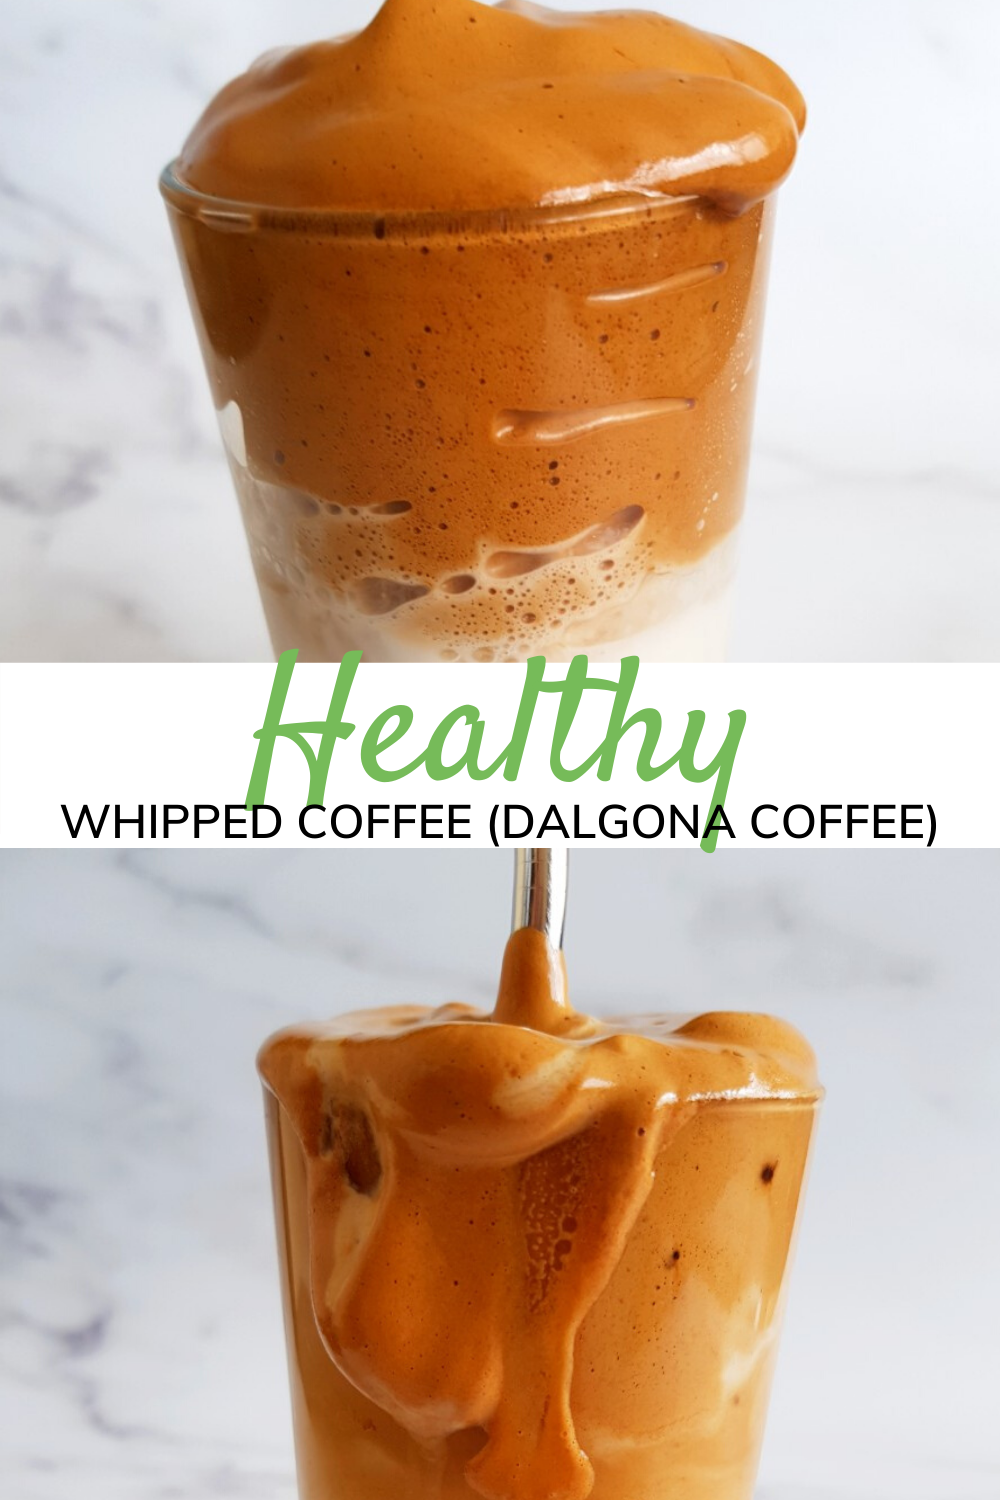 Iced Whipped Coffee (Dalgona Coffee) with Almond Milk